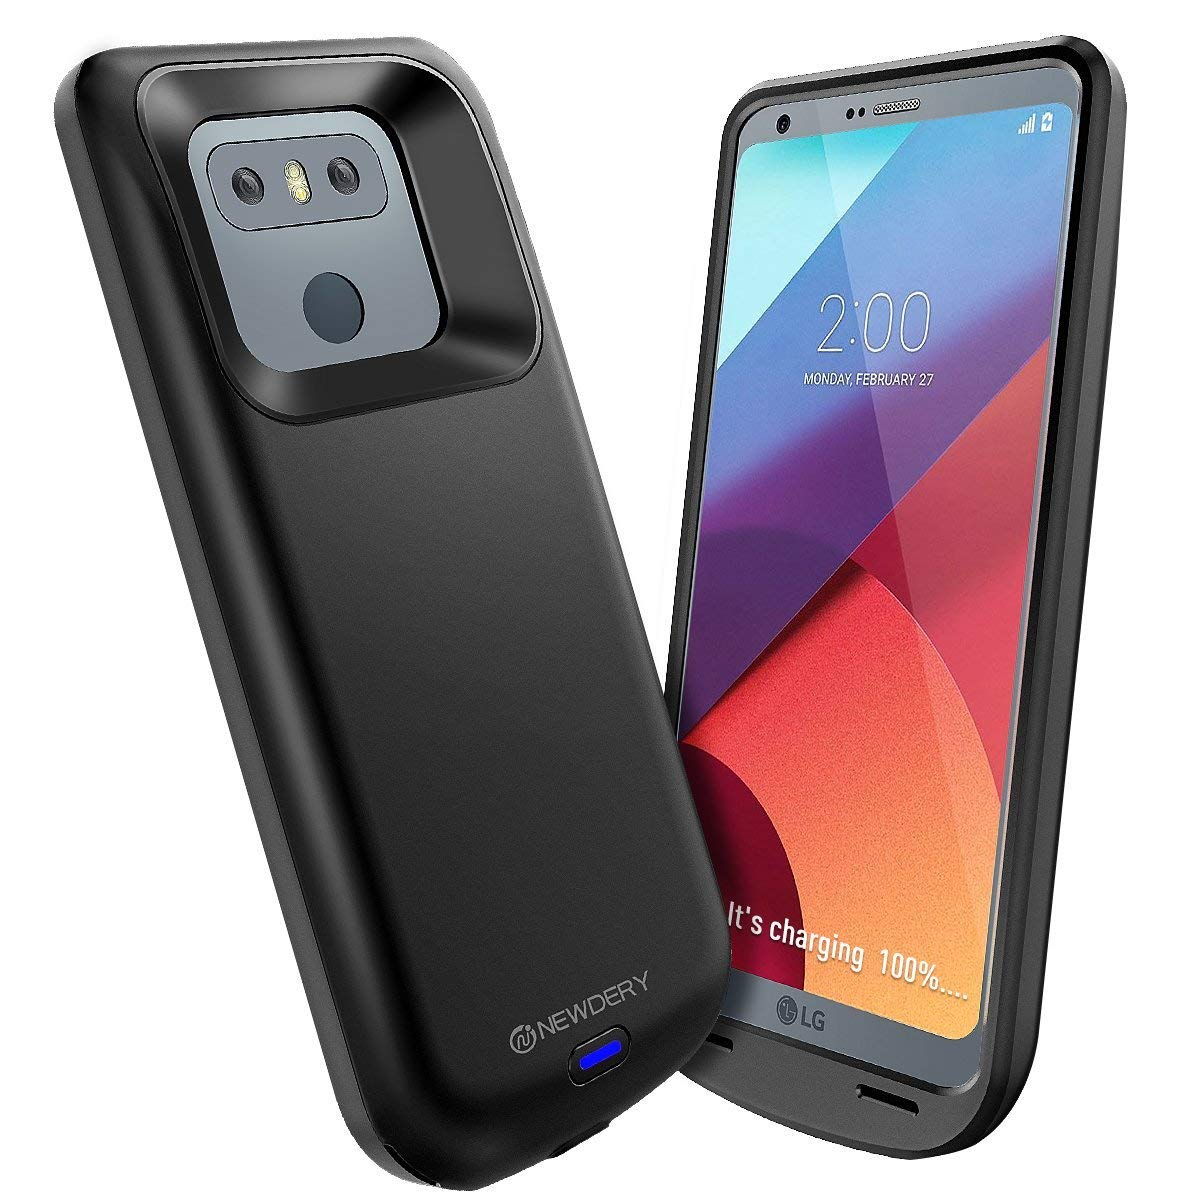 LG G6 Battery Case 5000mAh, Newdery LG G6/G6+ Portable Extended Charger Case, Rechargeable Power Bank Charging Cover [Original USB - C Input/Output Port and Full Protection] Compatible G6/G6+ (Black)